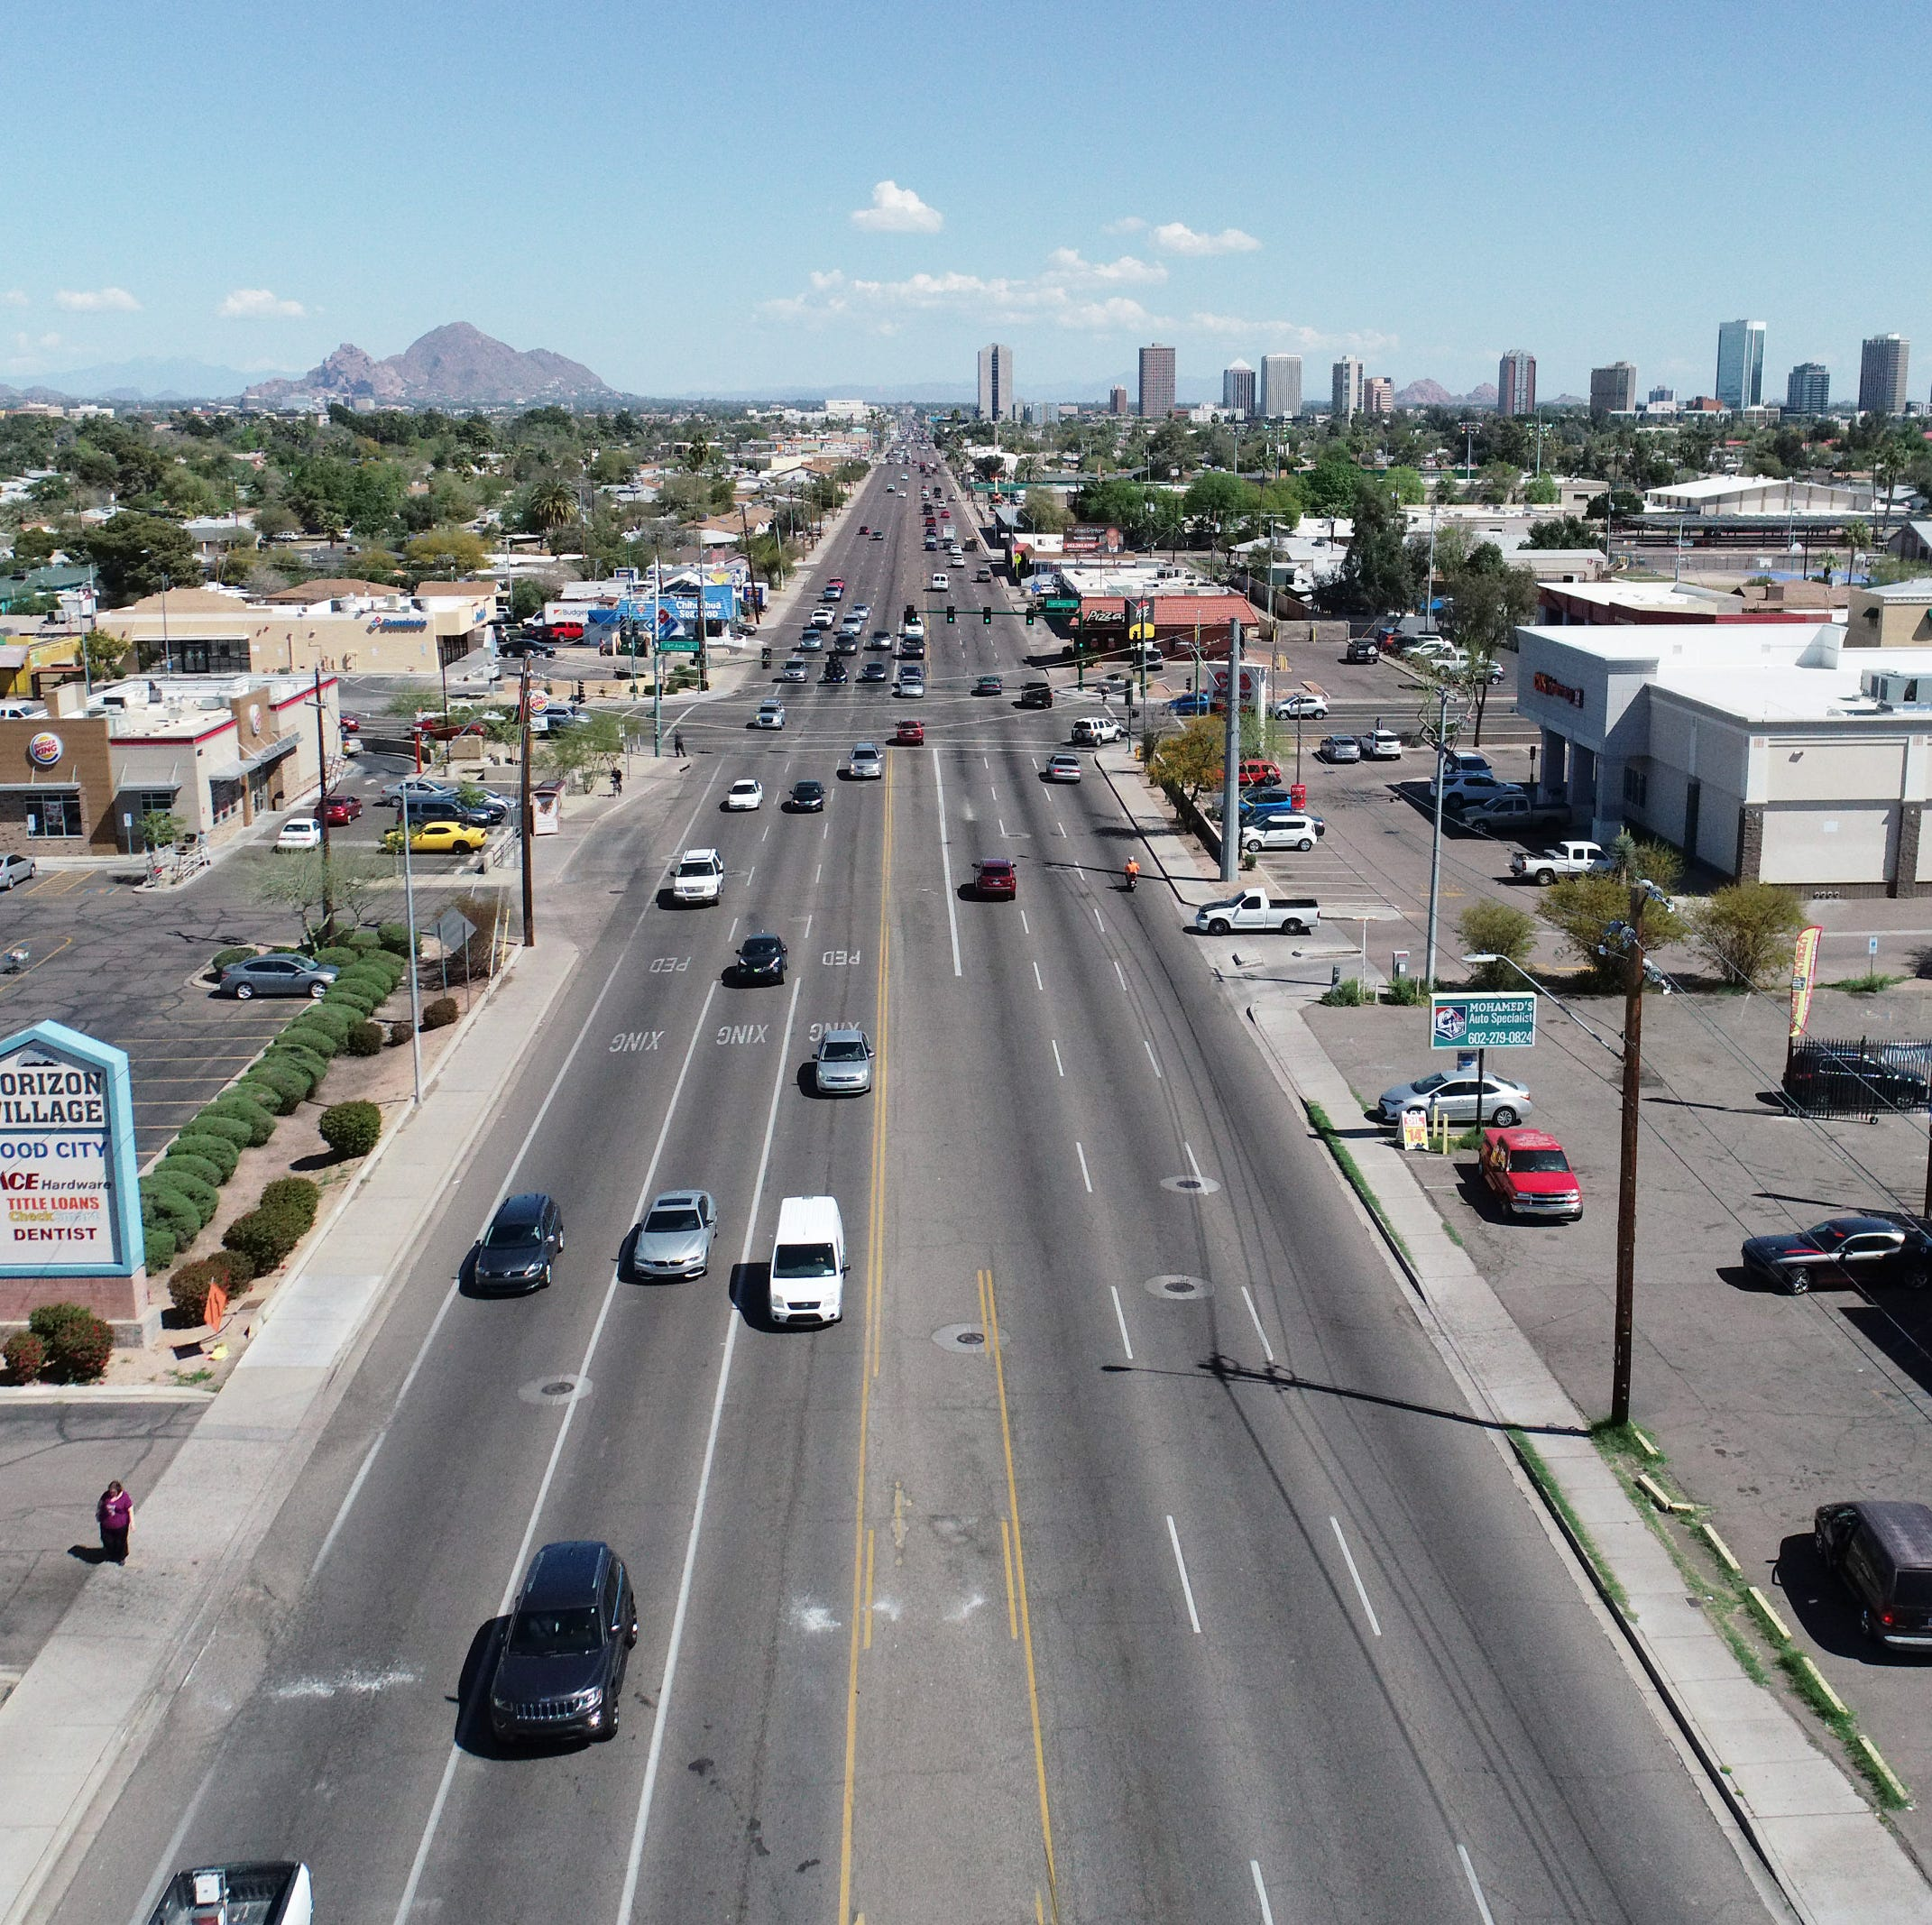 What can Phoenix do to improve deadly roads? City Council set to discuss pedestrian safety